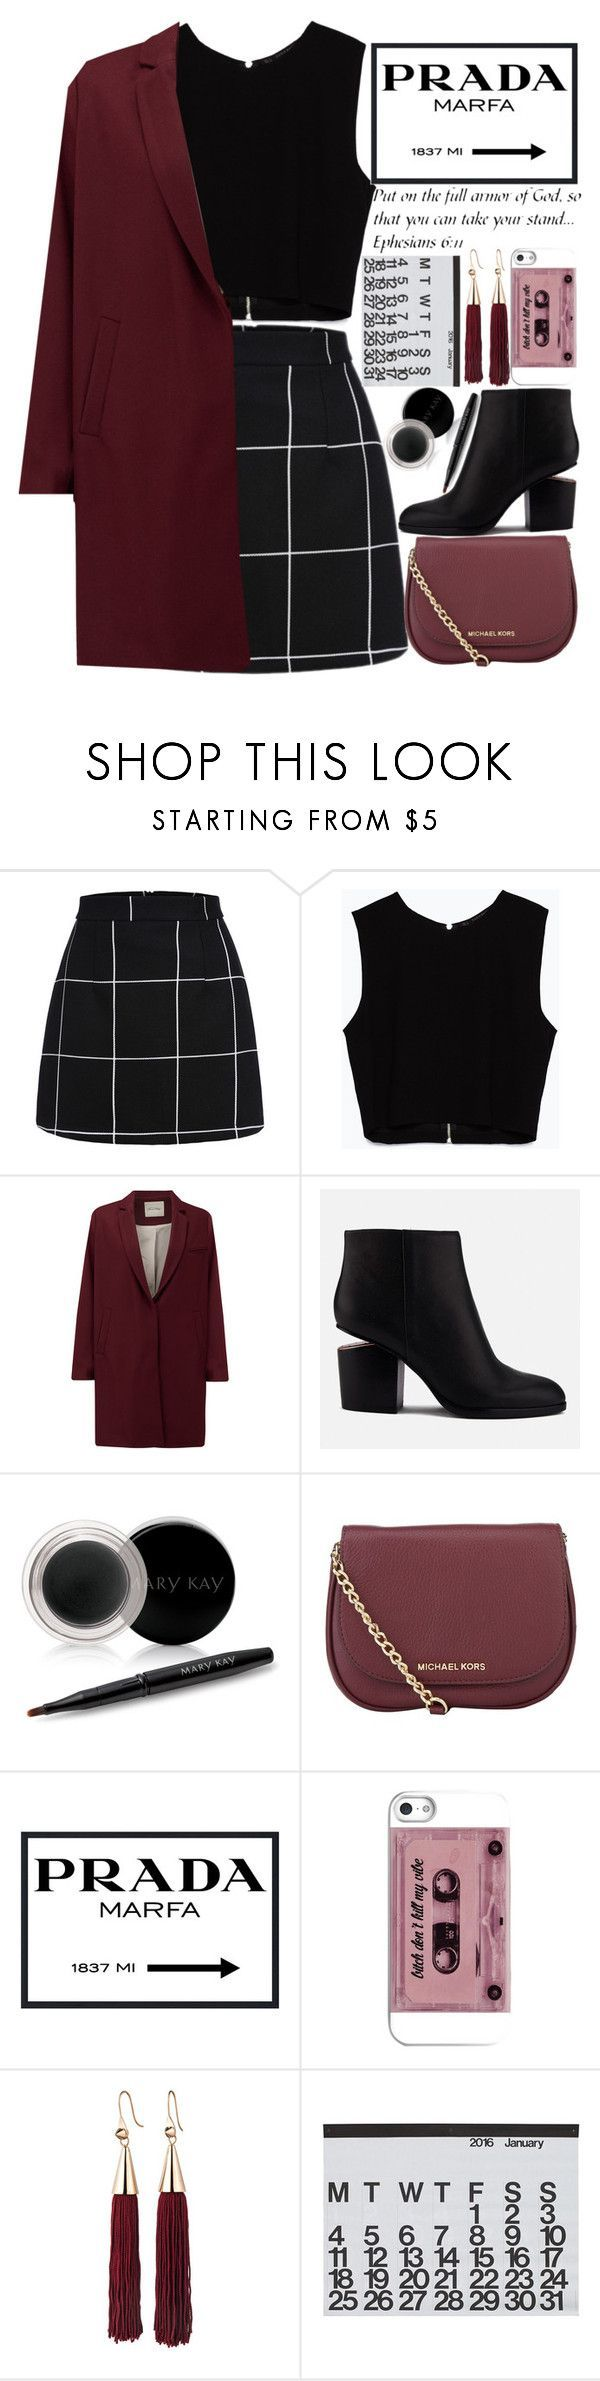 """""""Oxs Blood like/comment"""" by makfashions ❤ liked on Polyvore featuring Zara, American Vintage, Alexander Wang, Mary Kay, MICHAEL Michael Kors, Prada, Eddie Borgo, Crate and Barrel and WALL #CuteSkirts"""